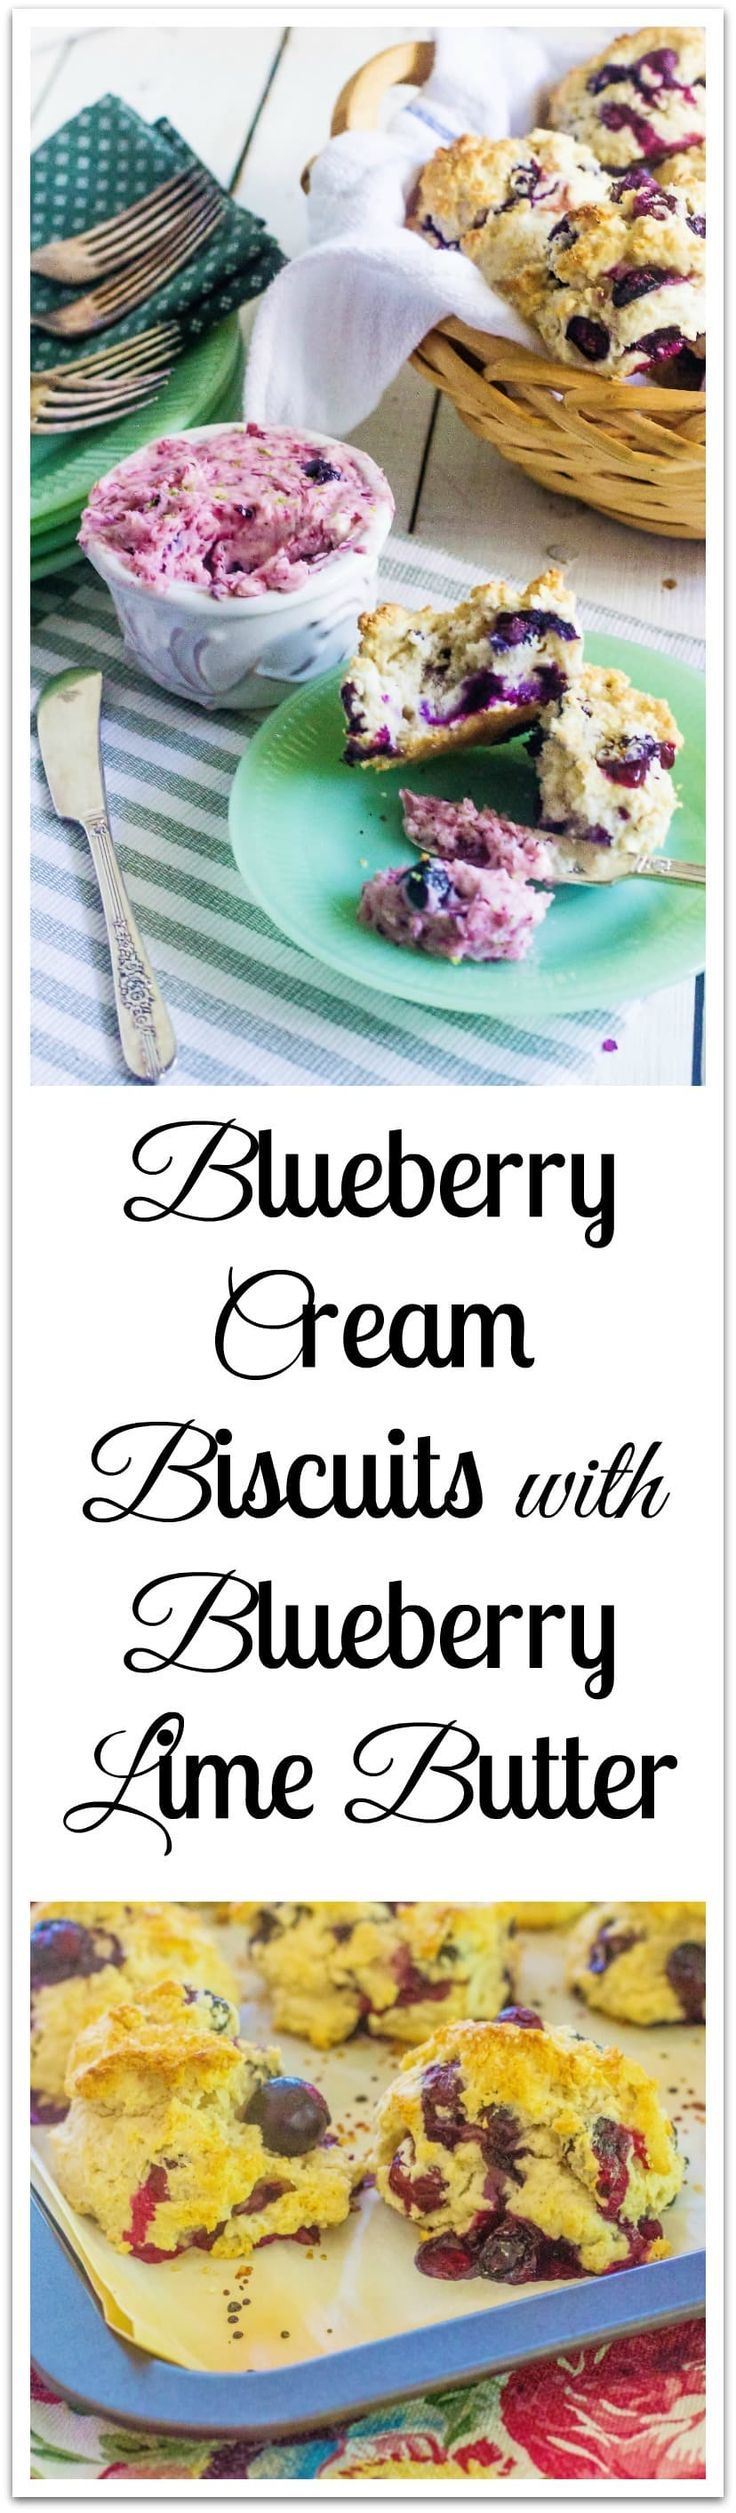 Blueberry Cream Biscuits with Blueberry Lime Butter. Easy-to-make cream biscuits don't require rolling or cutting. #OhSweetFlavor #ad